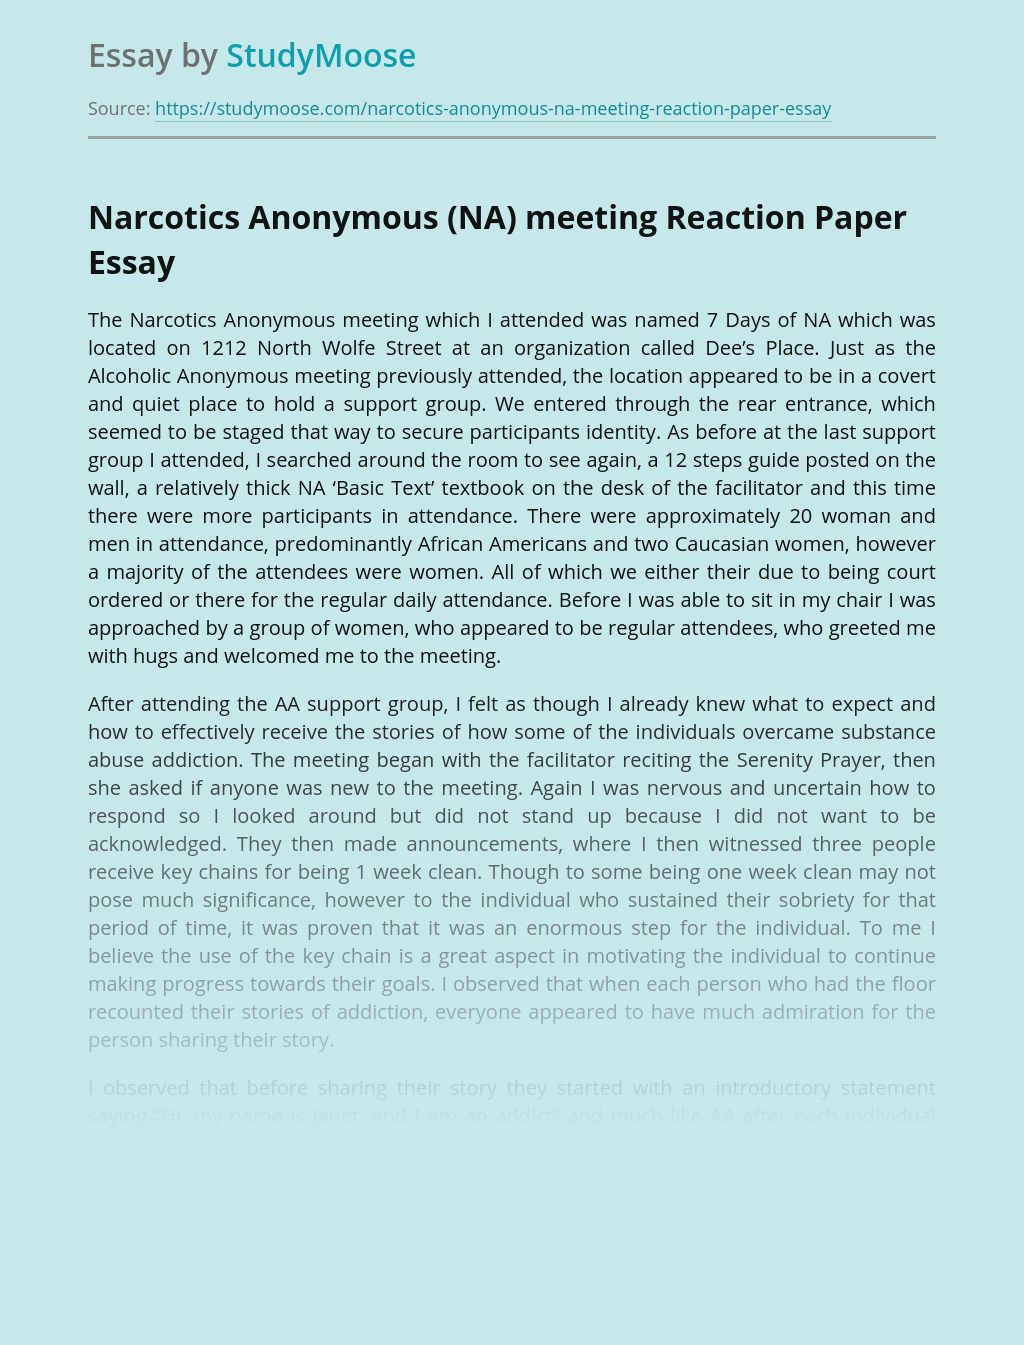 Narcotics Anonymous (NA) Meeting Reaction Paper